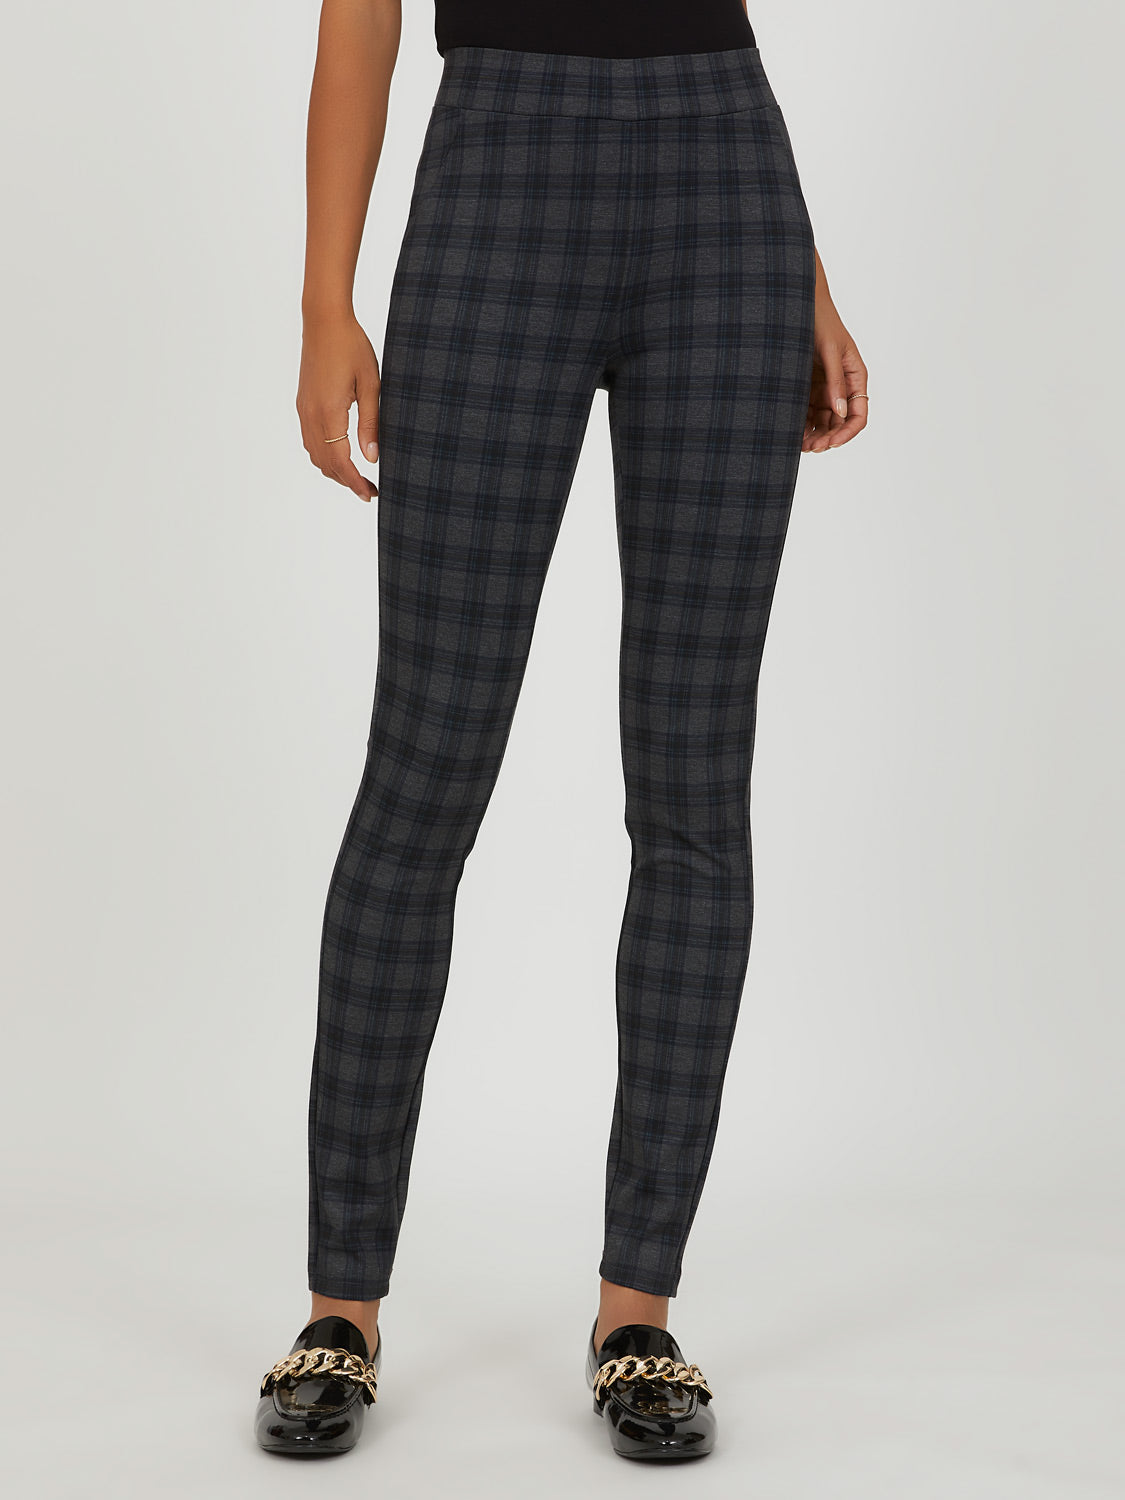 Plaid Knit Pull-On Pant